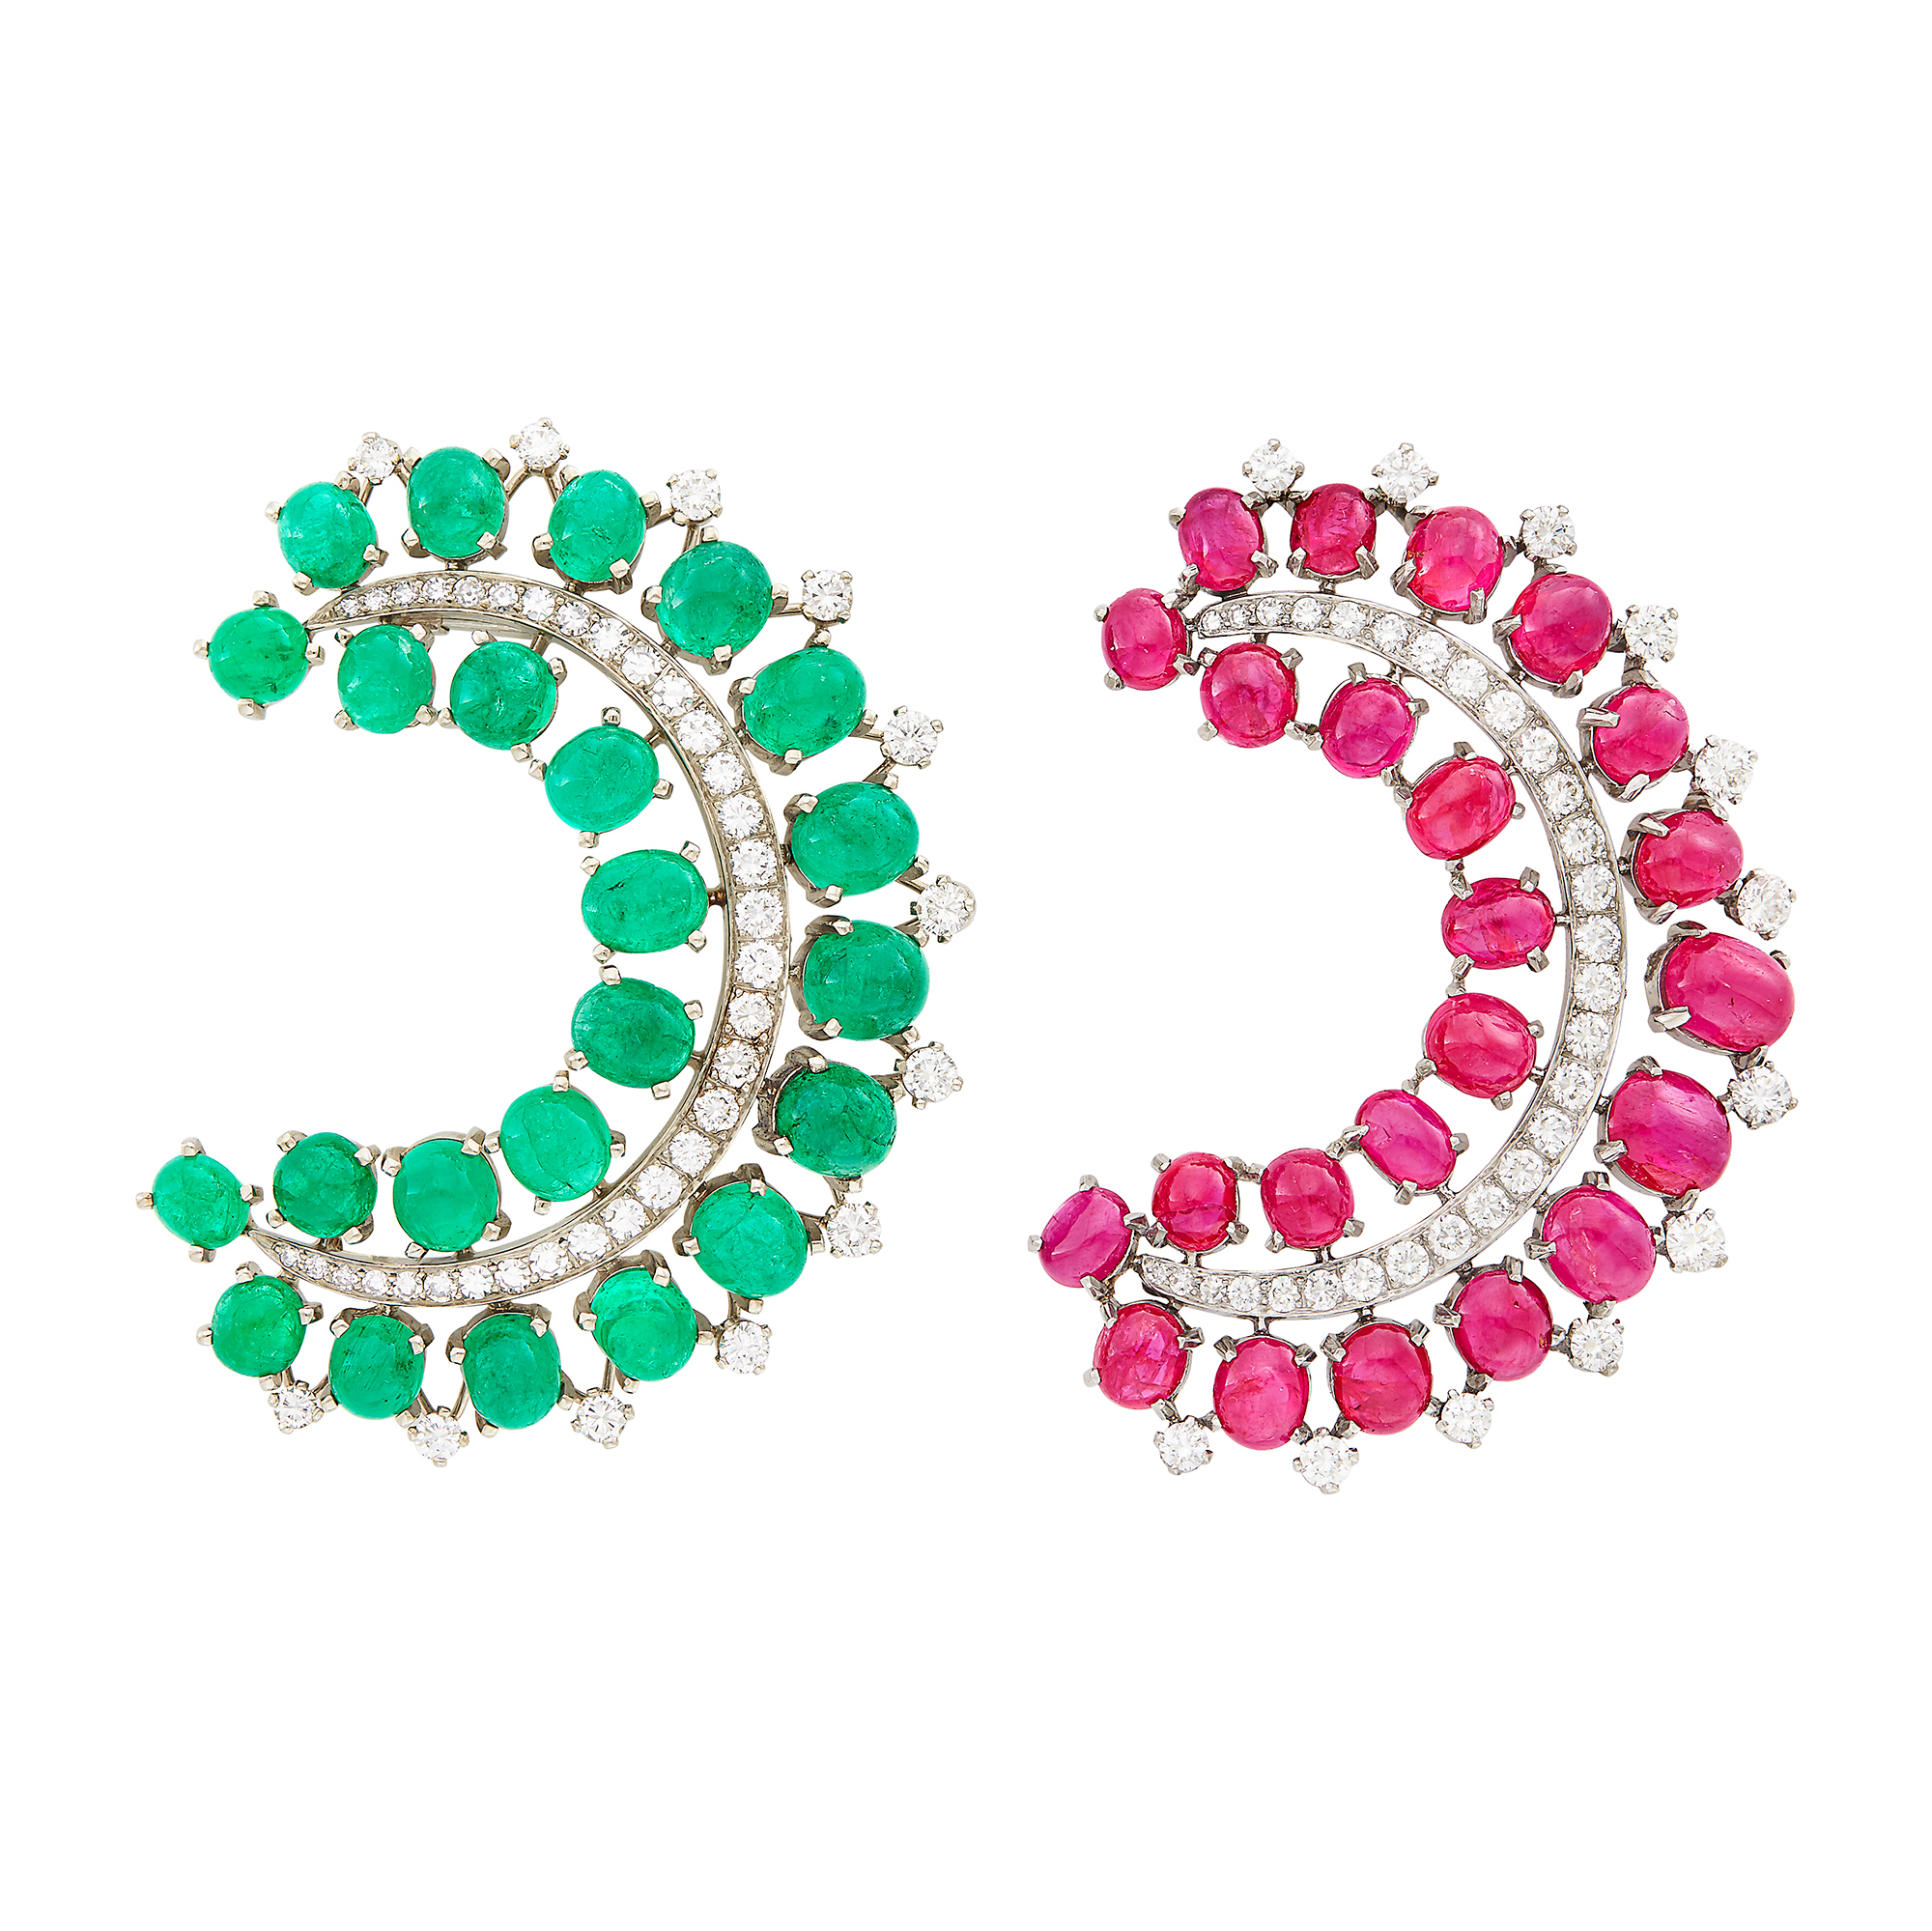 Lot image - Pair of Platinum, Low Karat Gold, Cabochon Ruby and Emerald and Diamond Clips